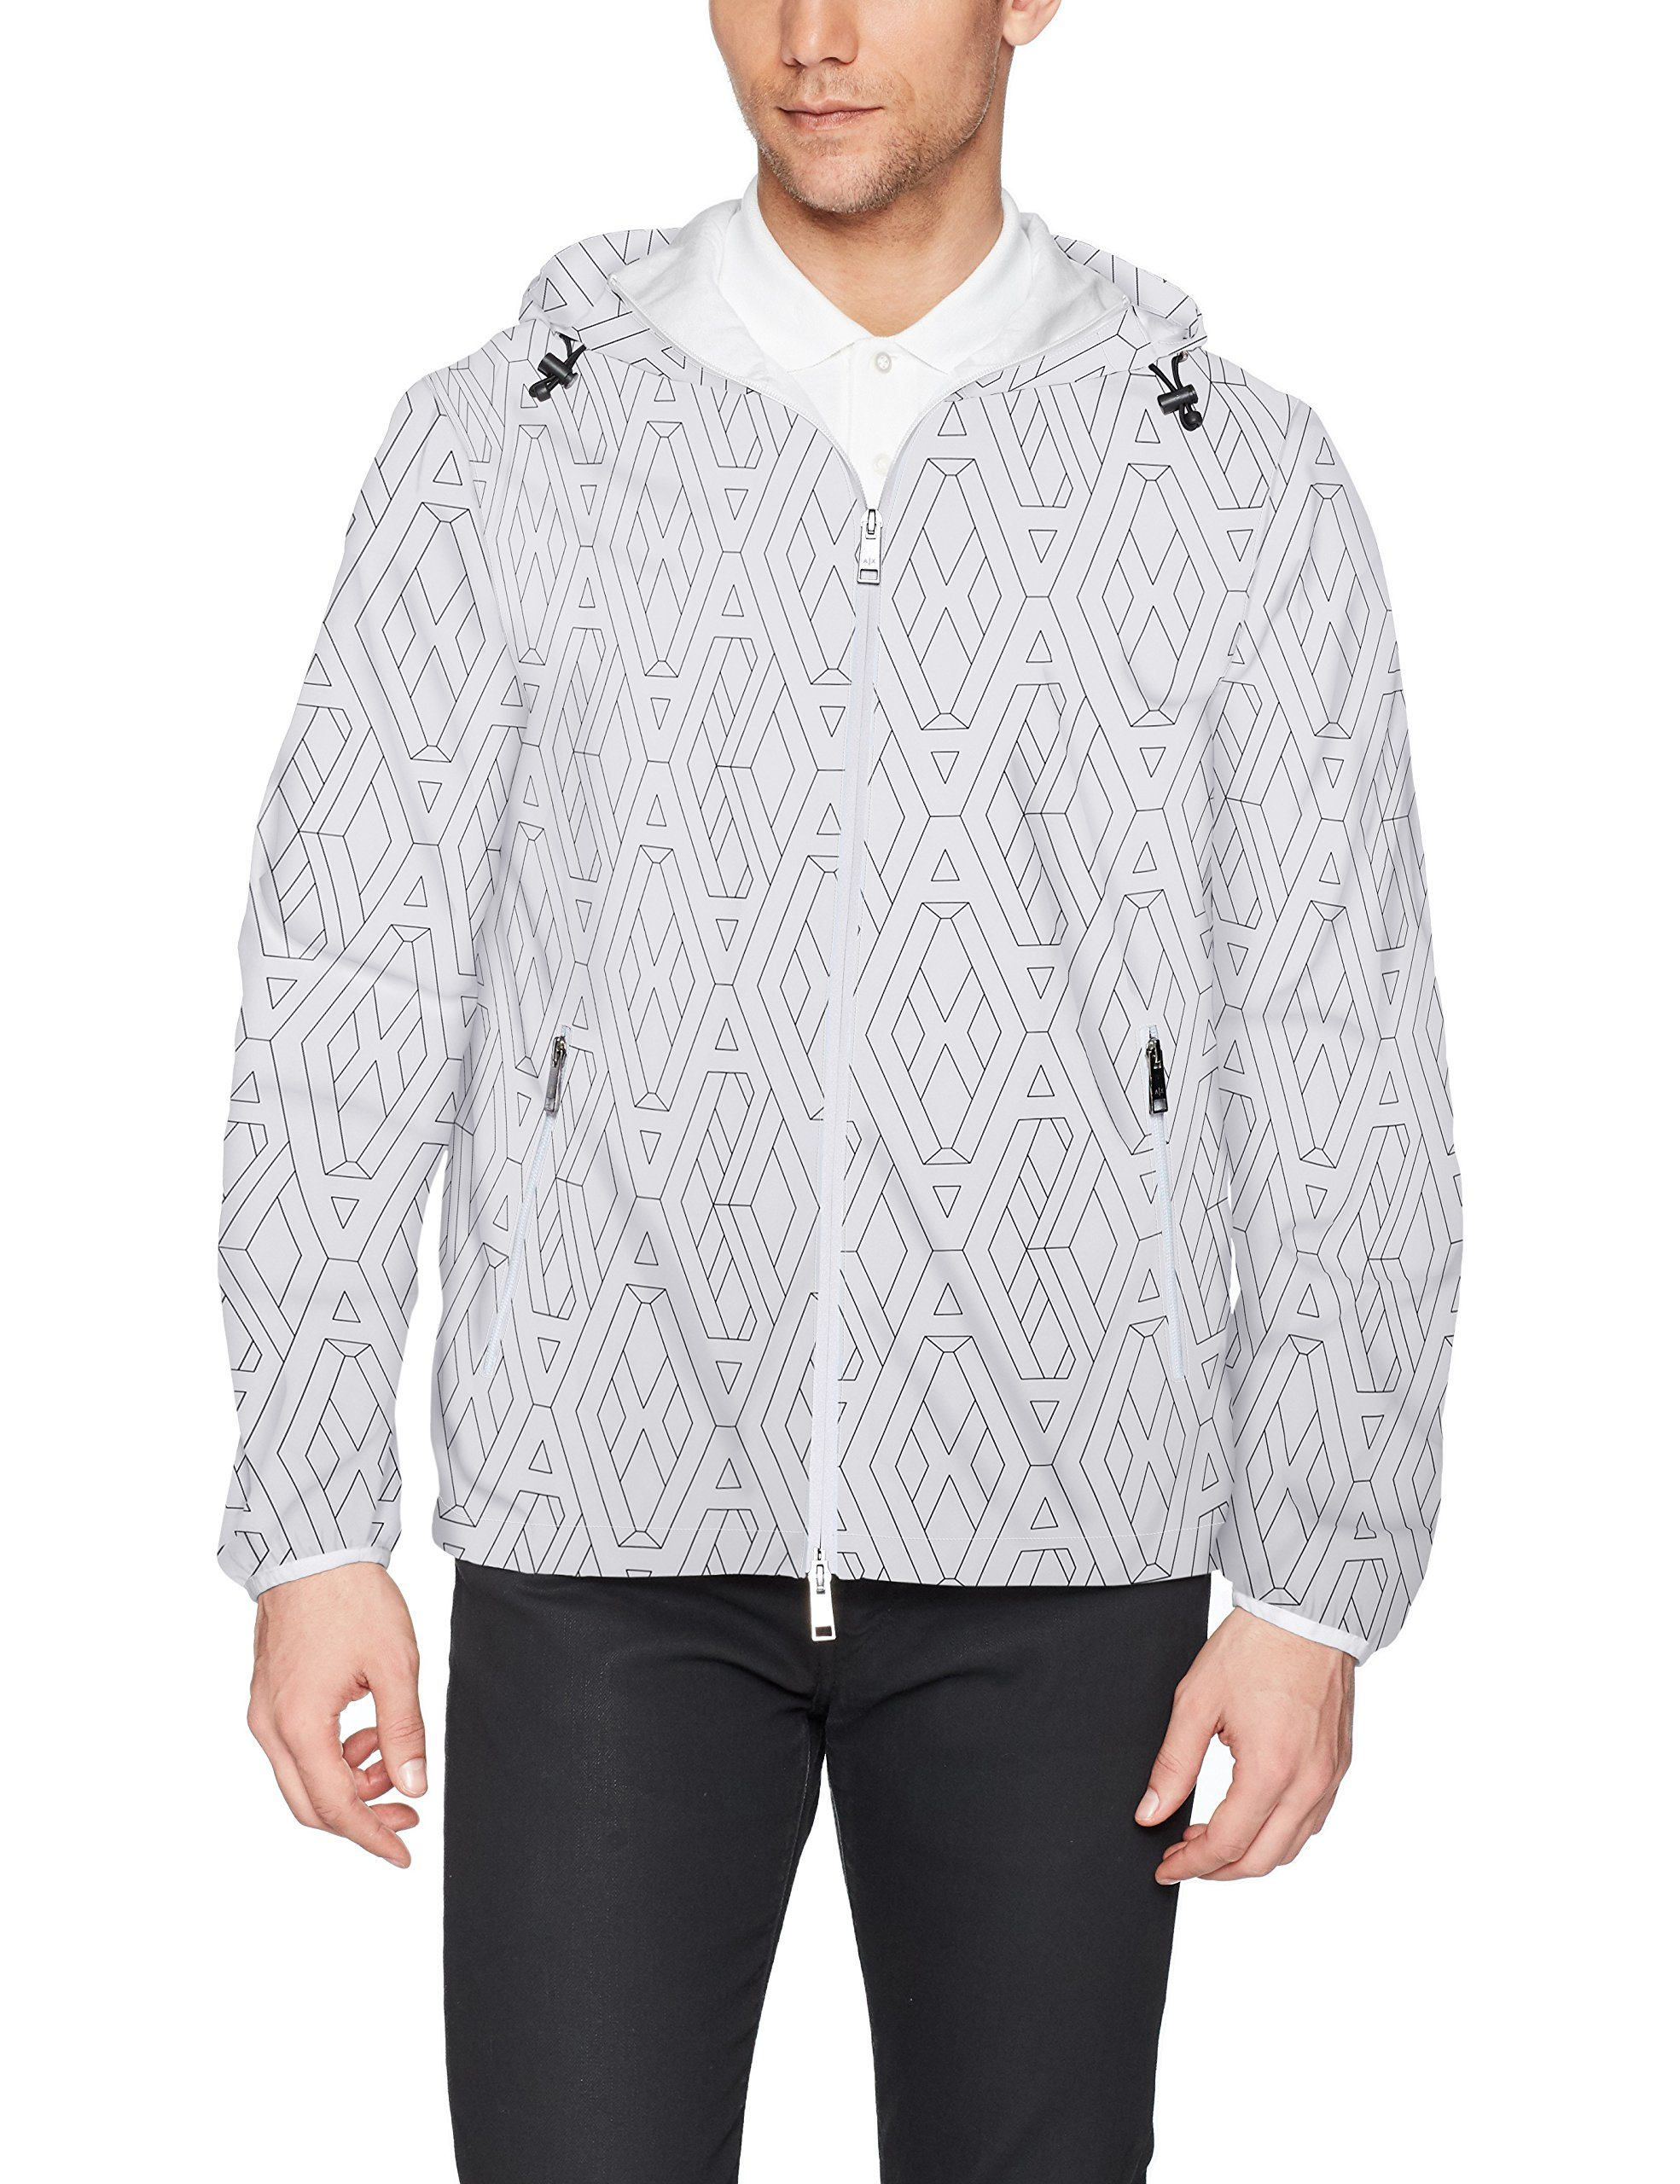 A|X Armani Exchange Men's Logo Printed Armani Activewear Jacket, White Geometric, M